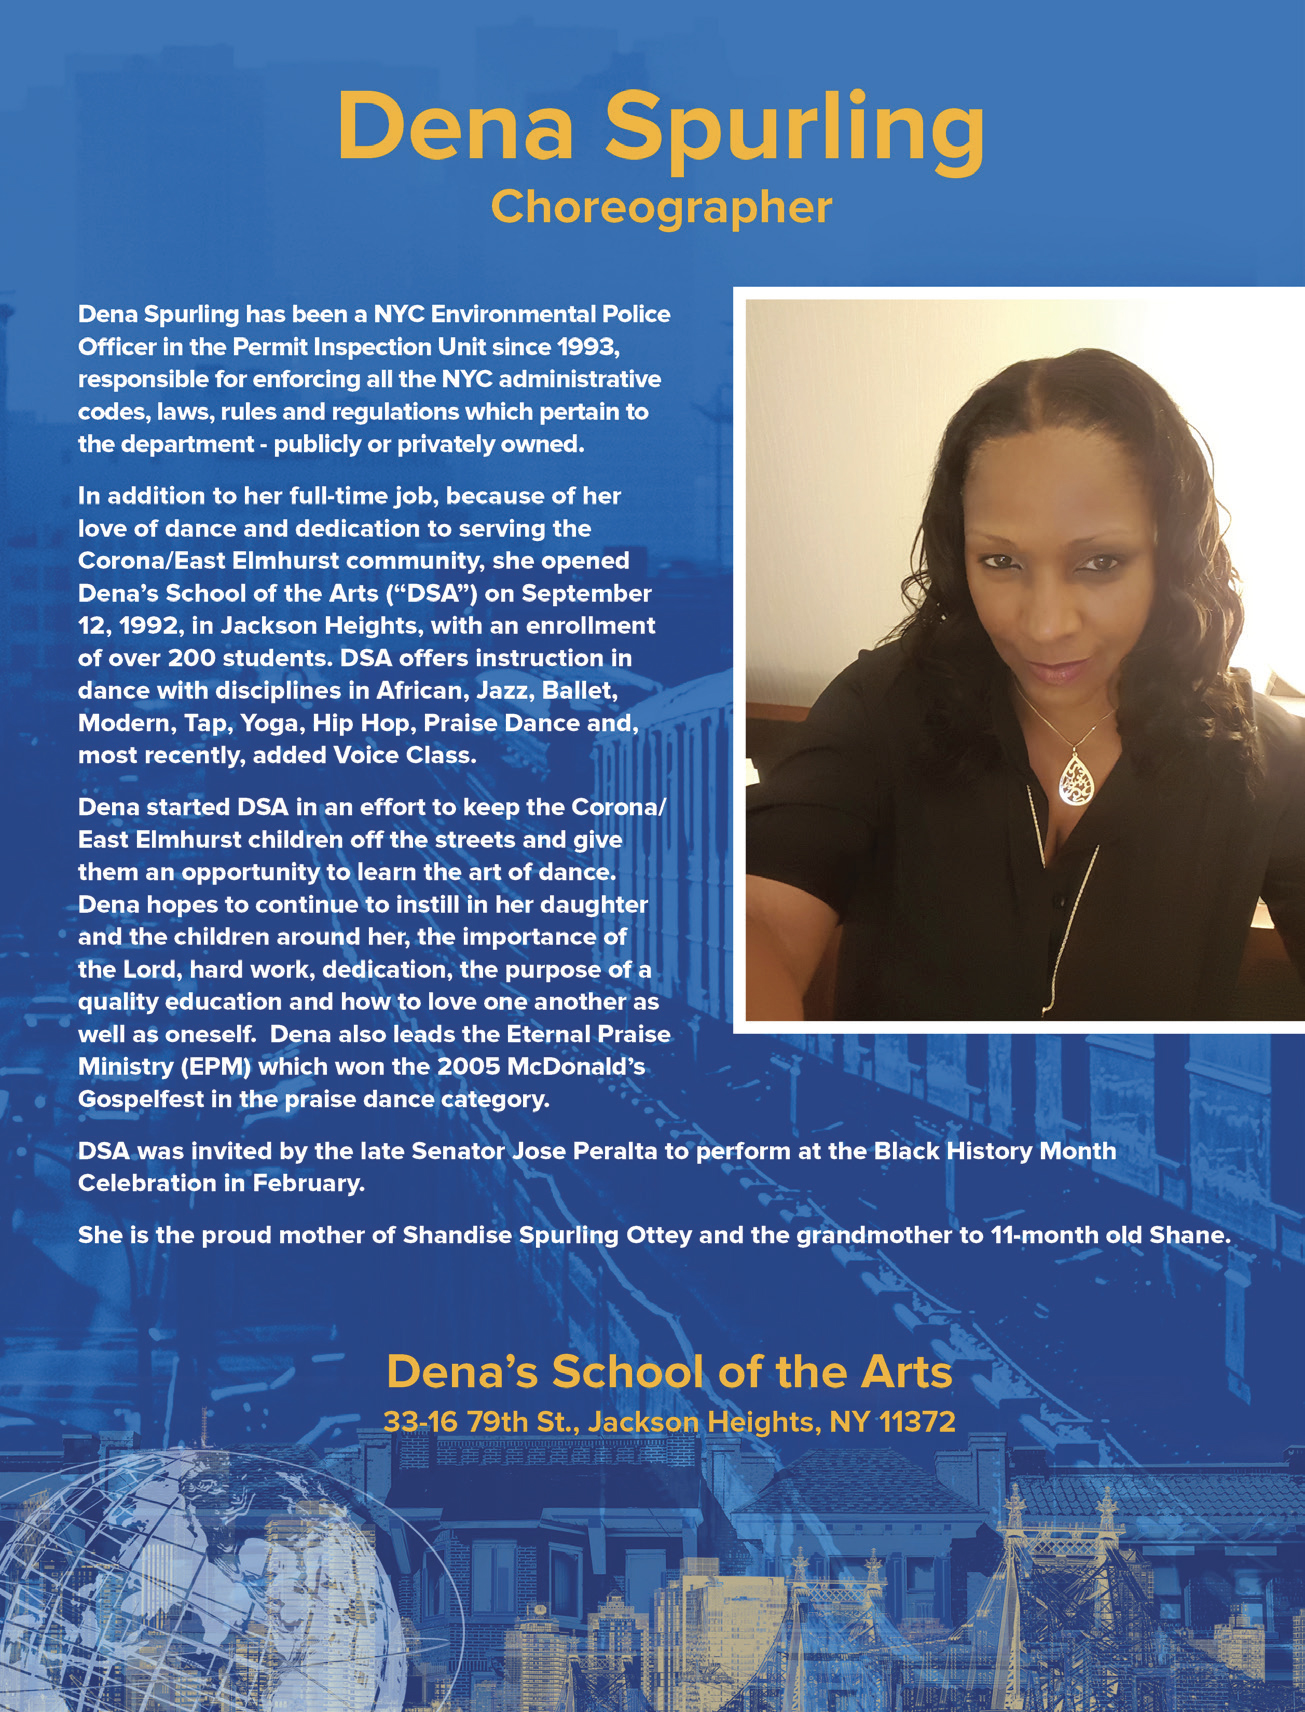 Dena Spurling, Choreographer and NYC Environmental Police Officer.